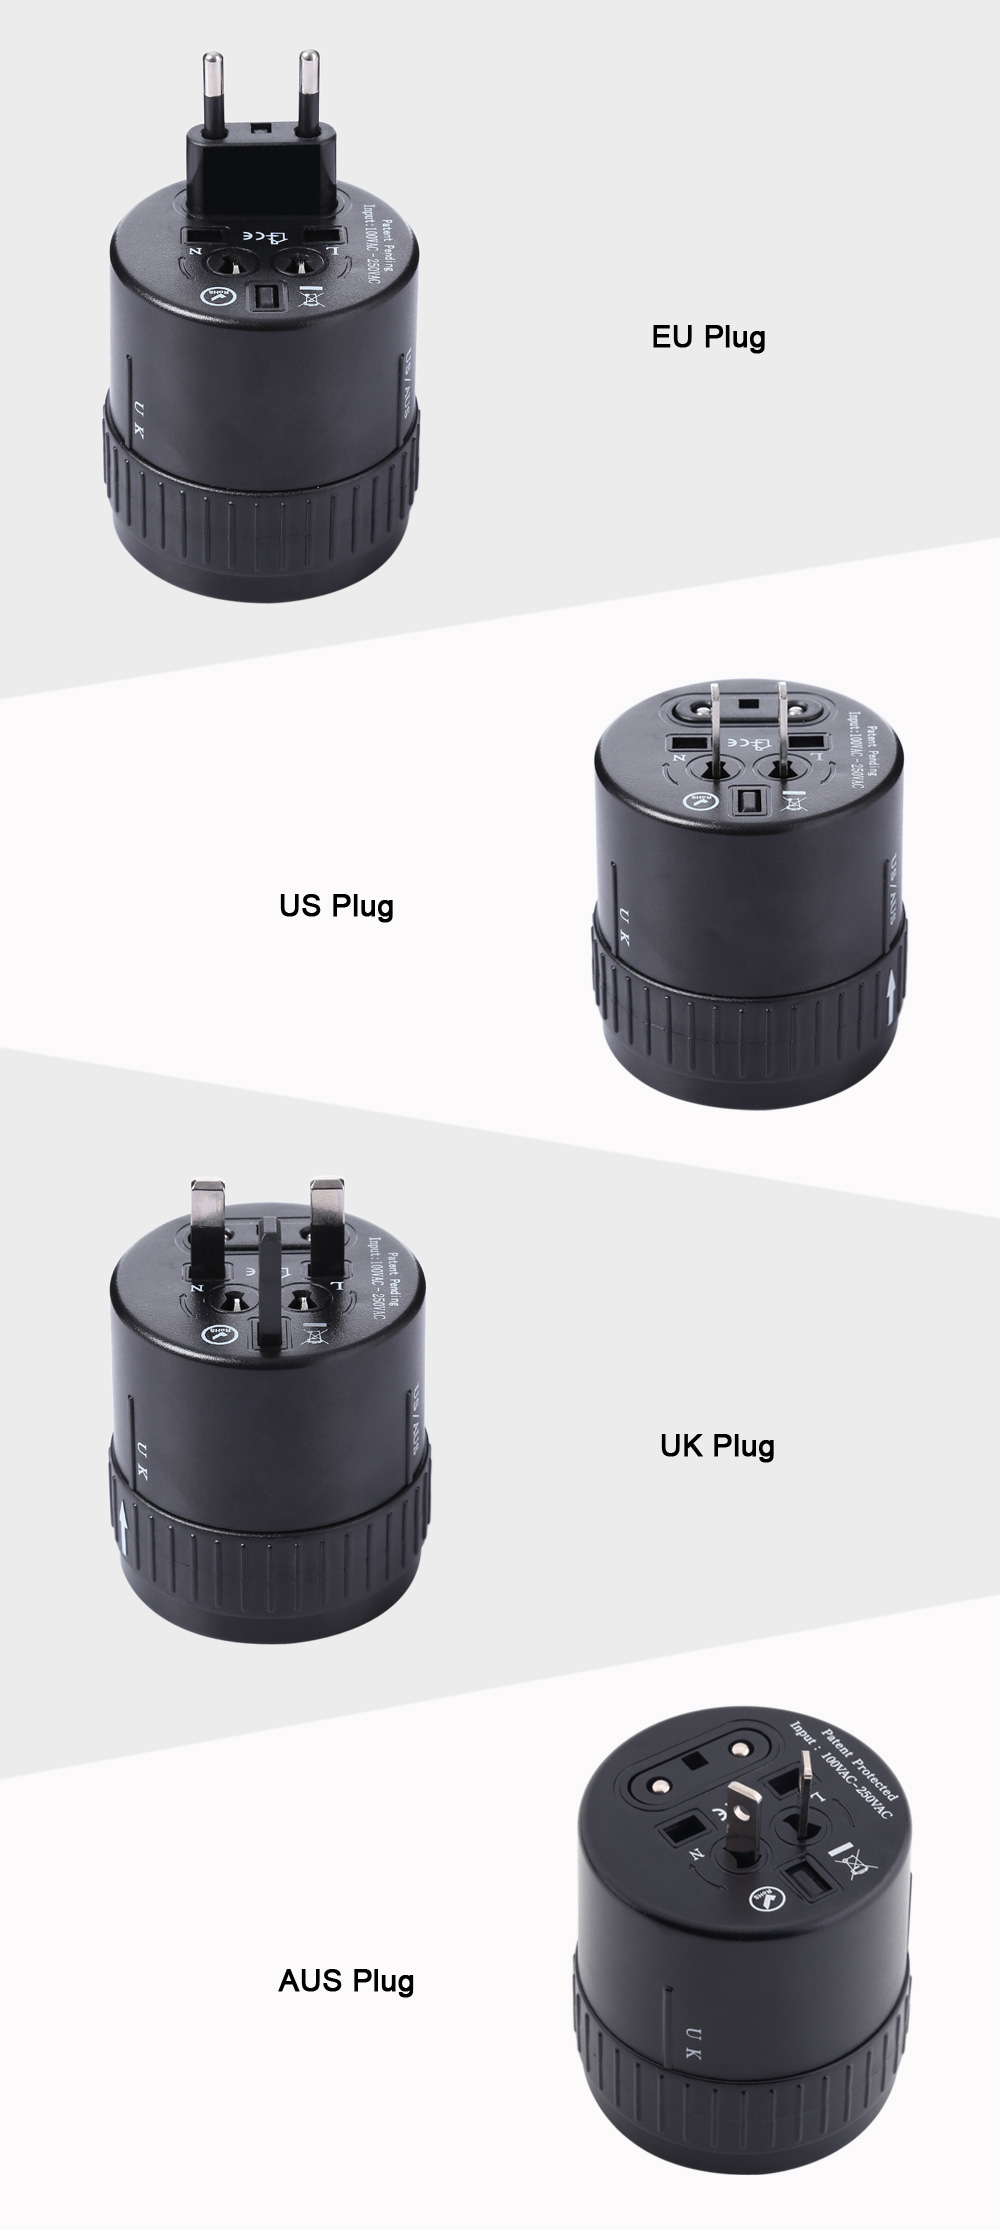 HHT179 Rotary International Travel Plug Dual USB Port Charging Adapter(1000mA)